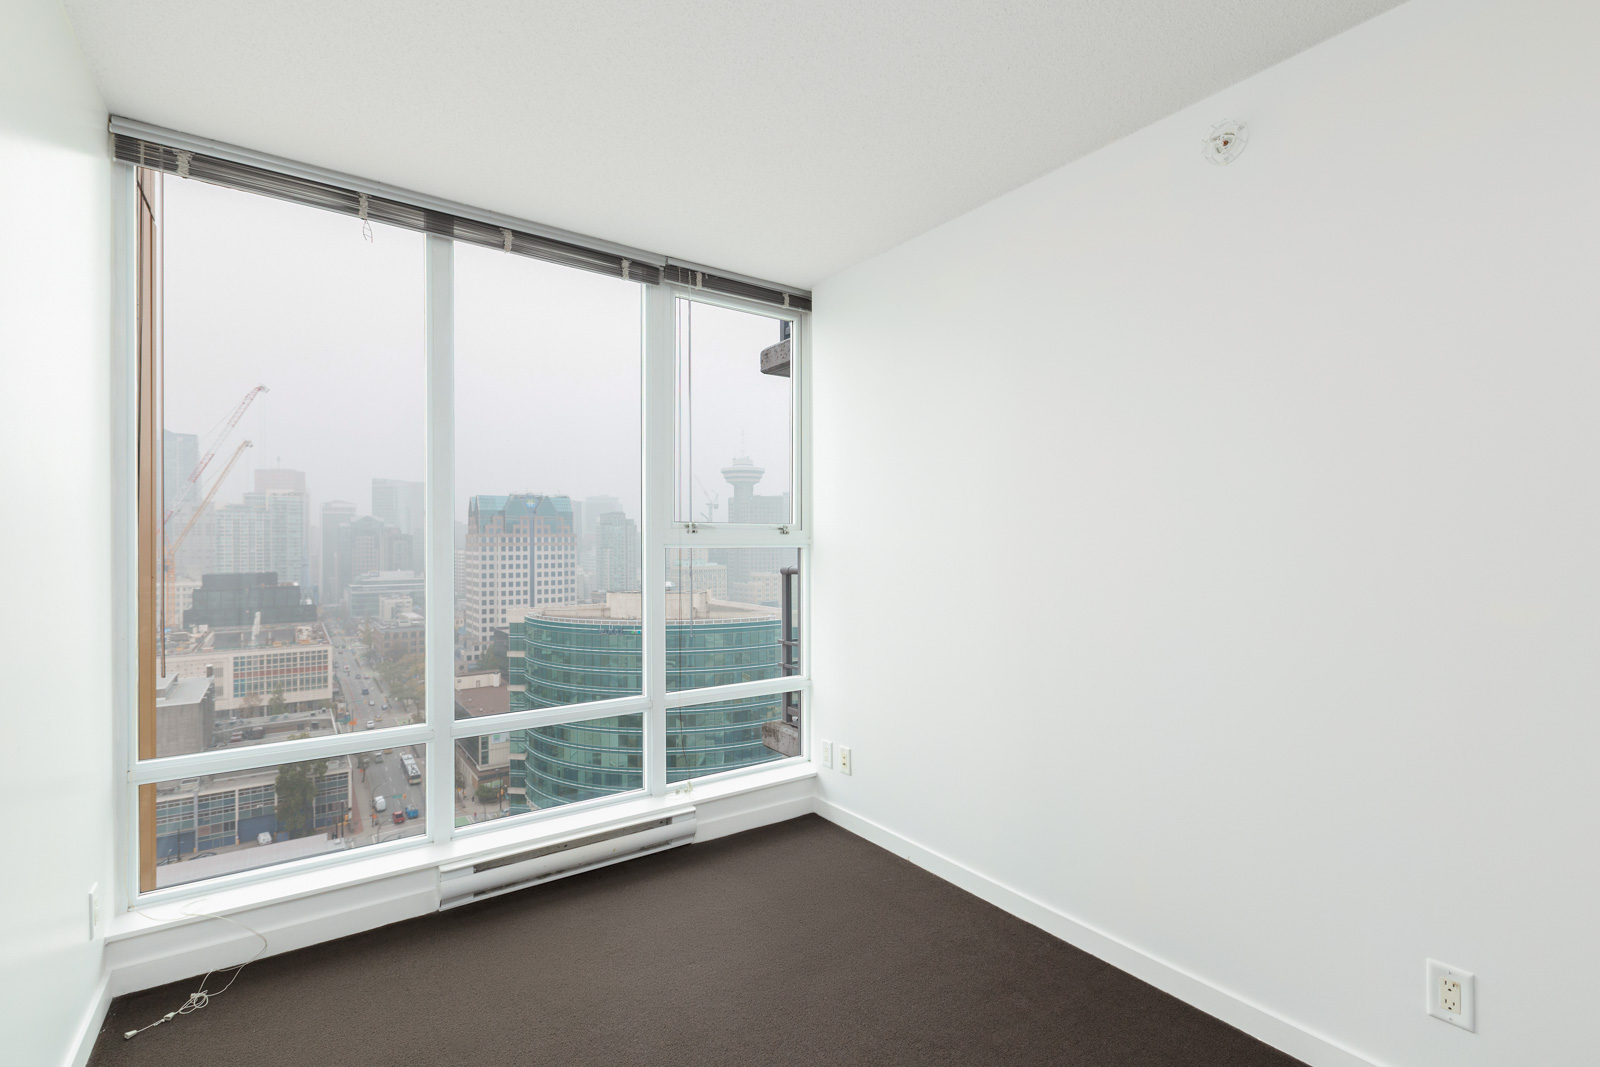 bedroom in spectrum rental condo managed by birds nest properties with window and view on a cloudy day